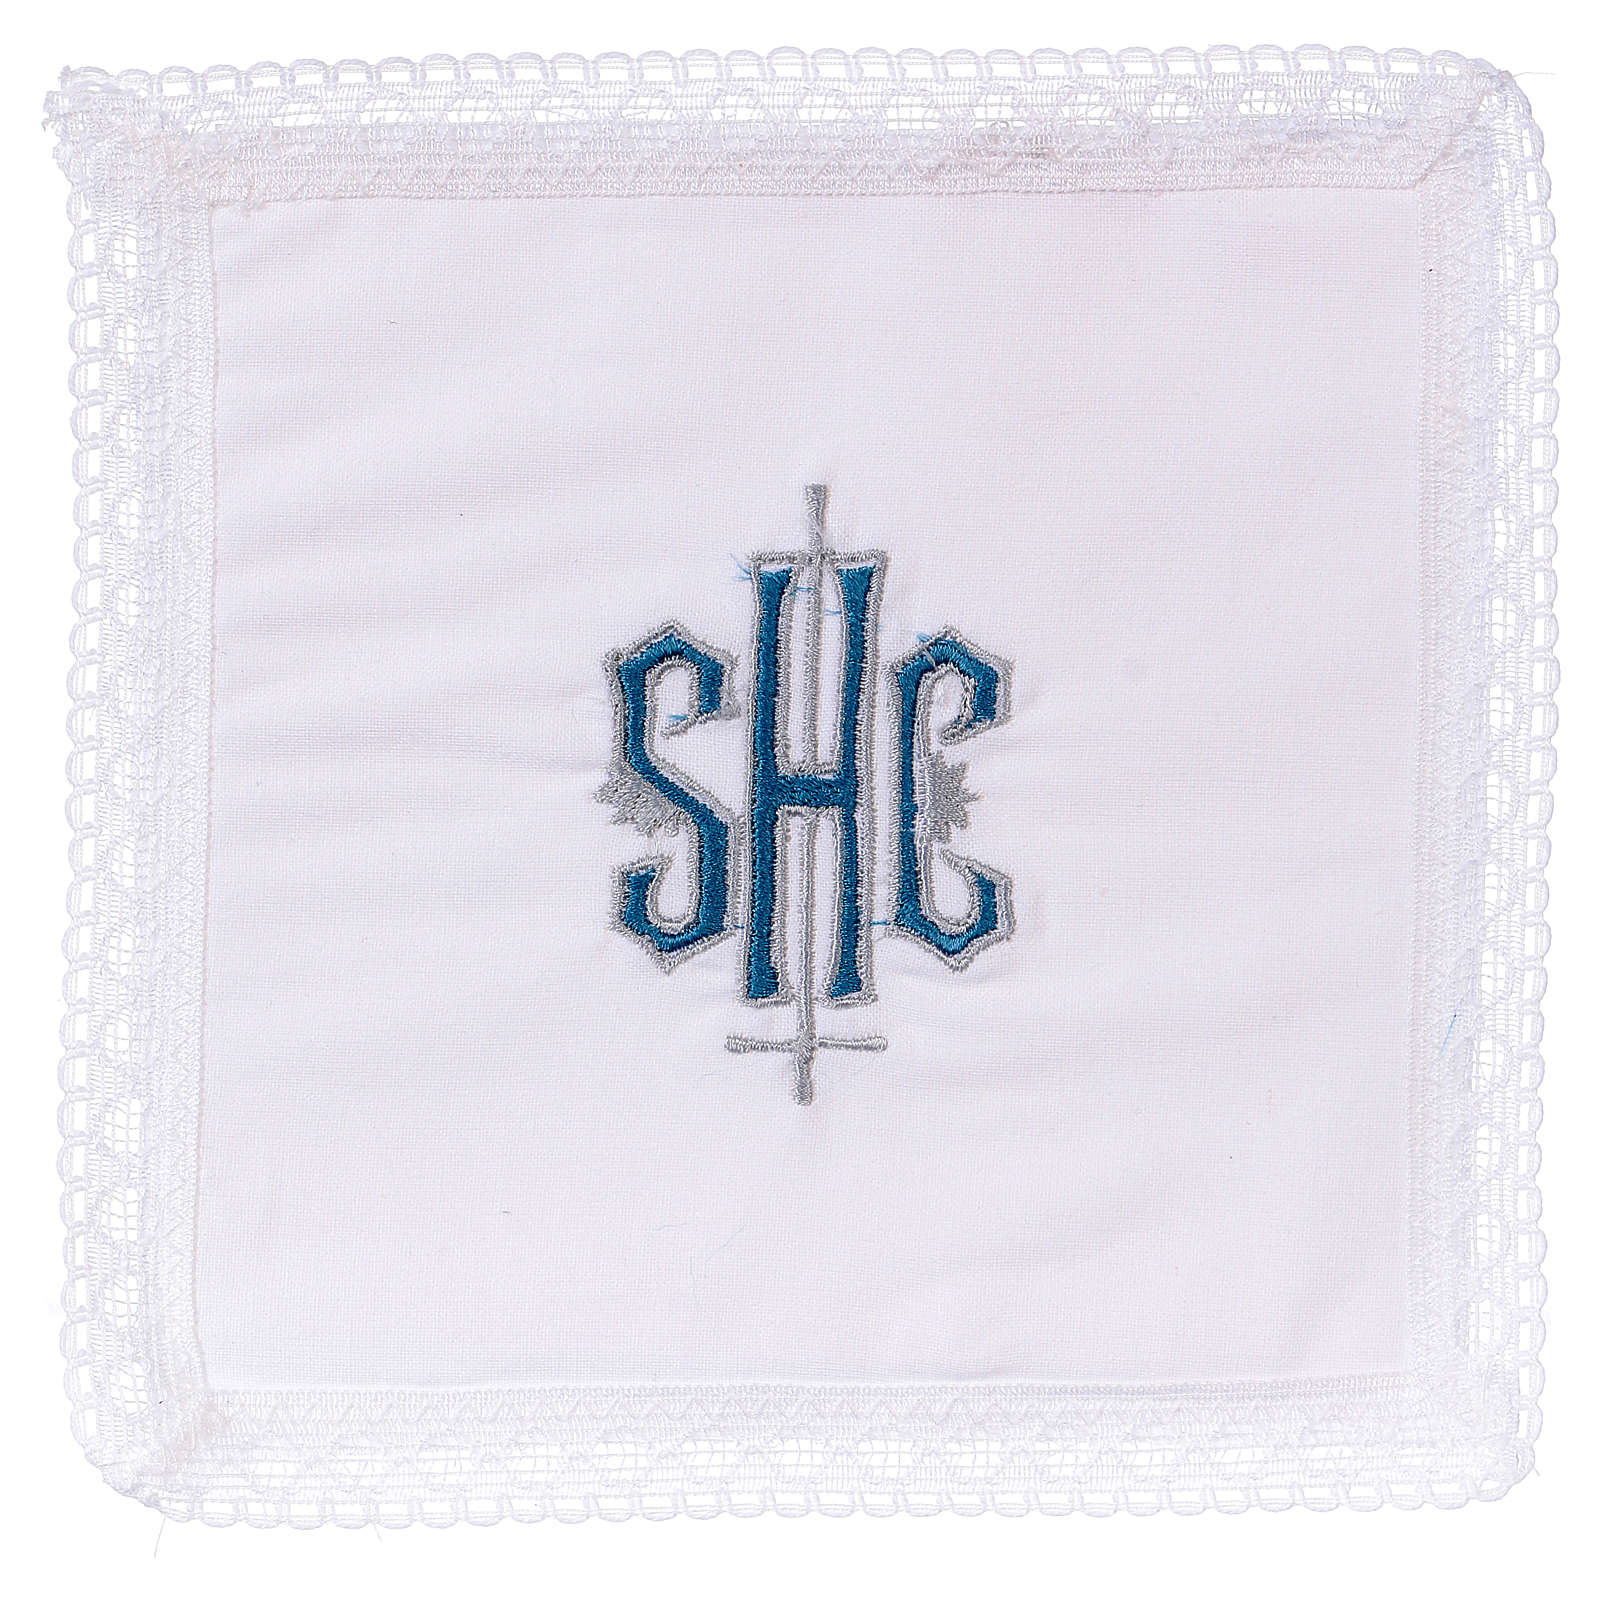 Pall chalice with IHS symbol, 100% cotton 4